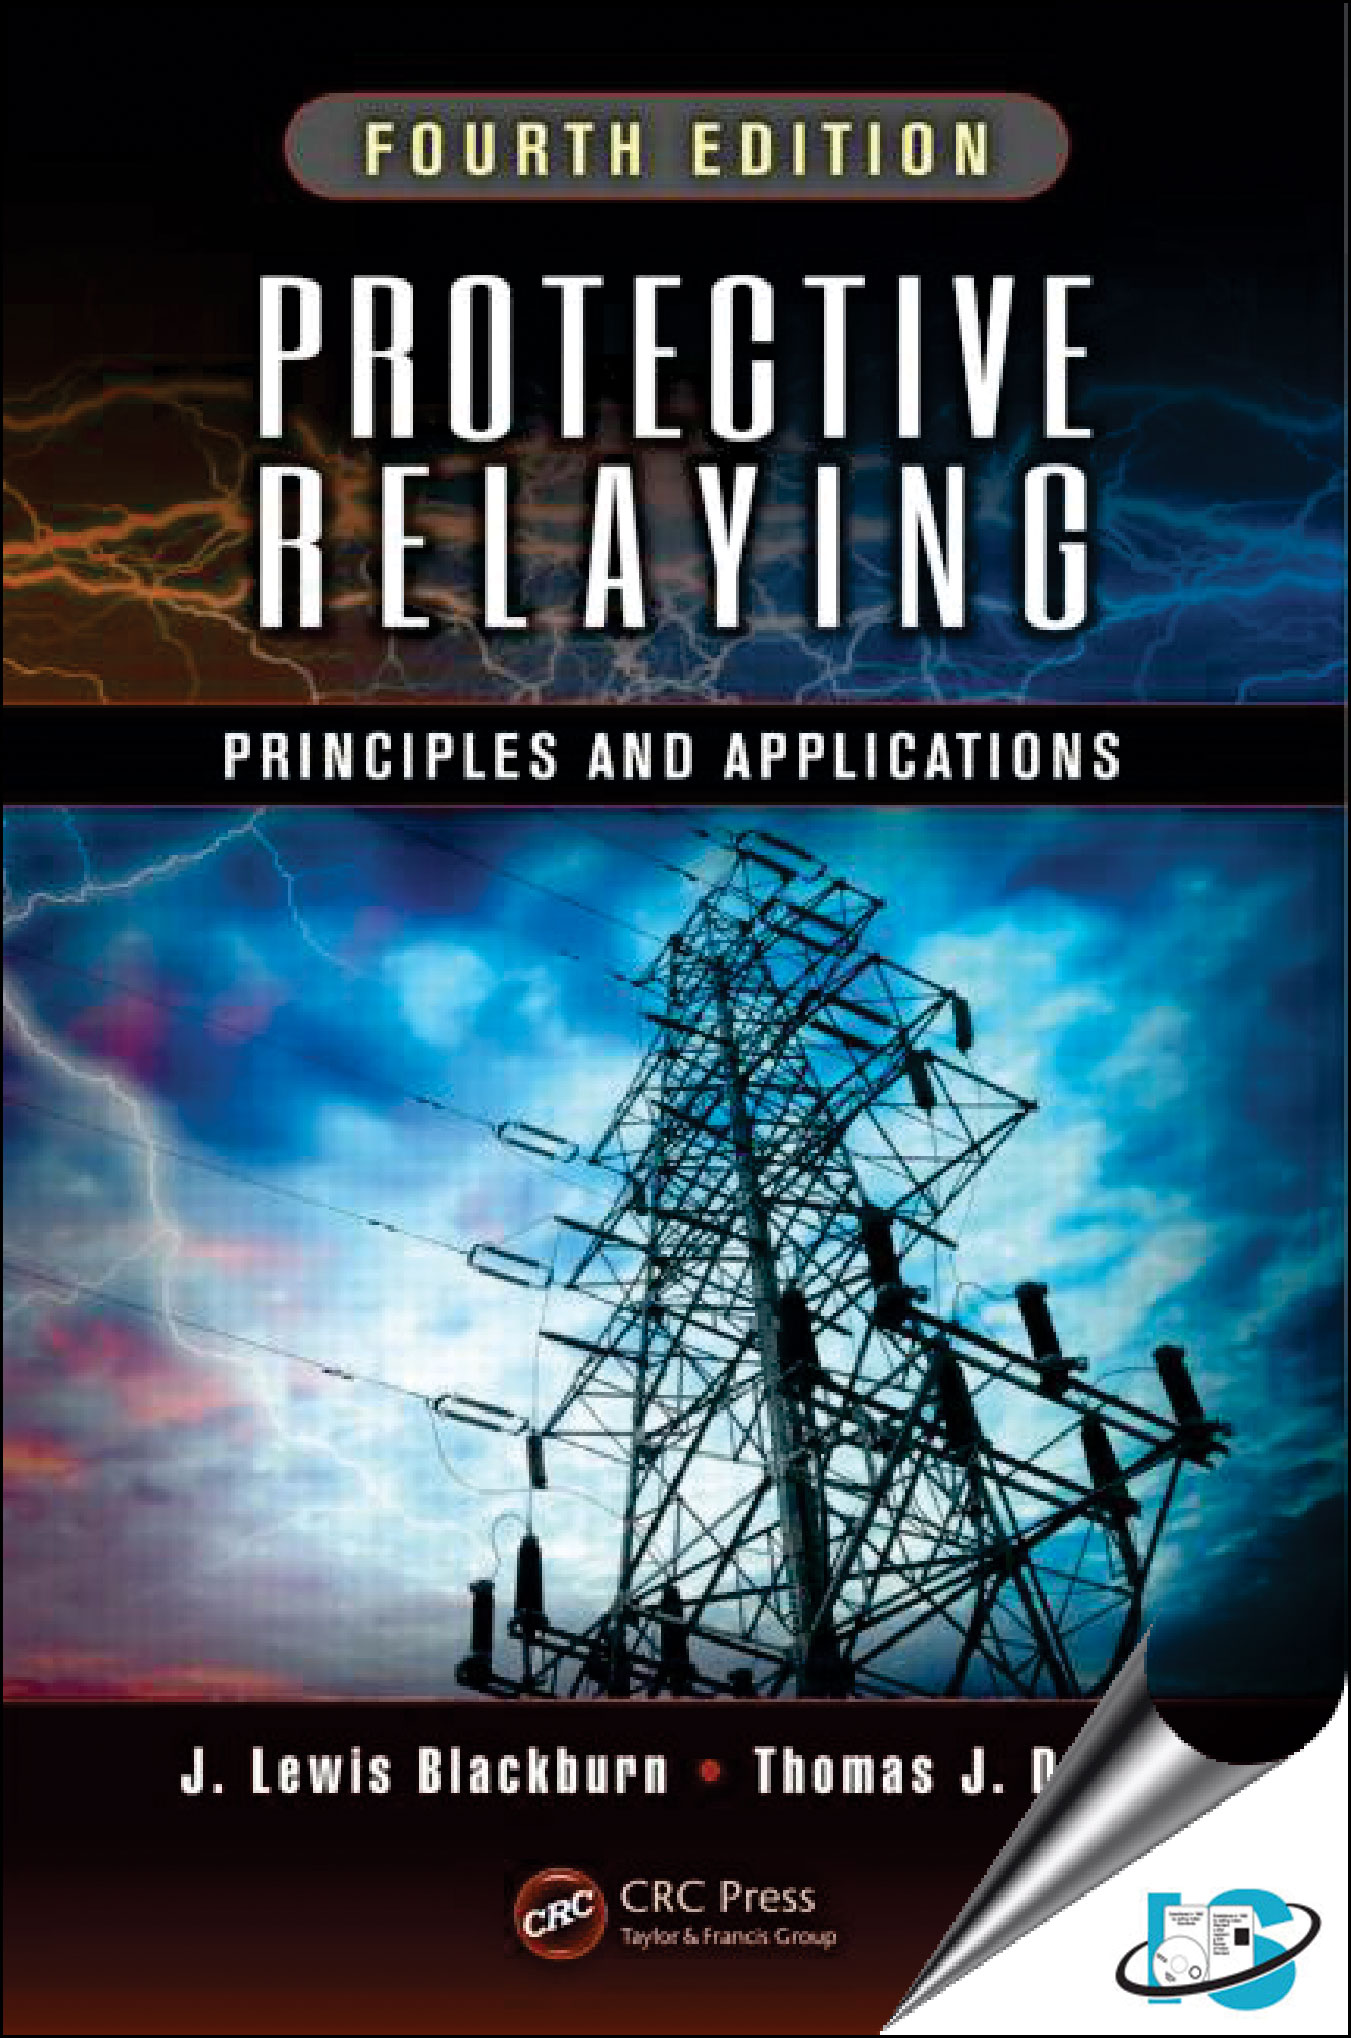 Title: Protective Relaying : Principles and Applications, 4th Edition  Author: J. Lewis Blackburn, Thomas J. Domin ISBN: 1439888116 / 9781439888117